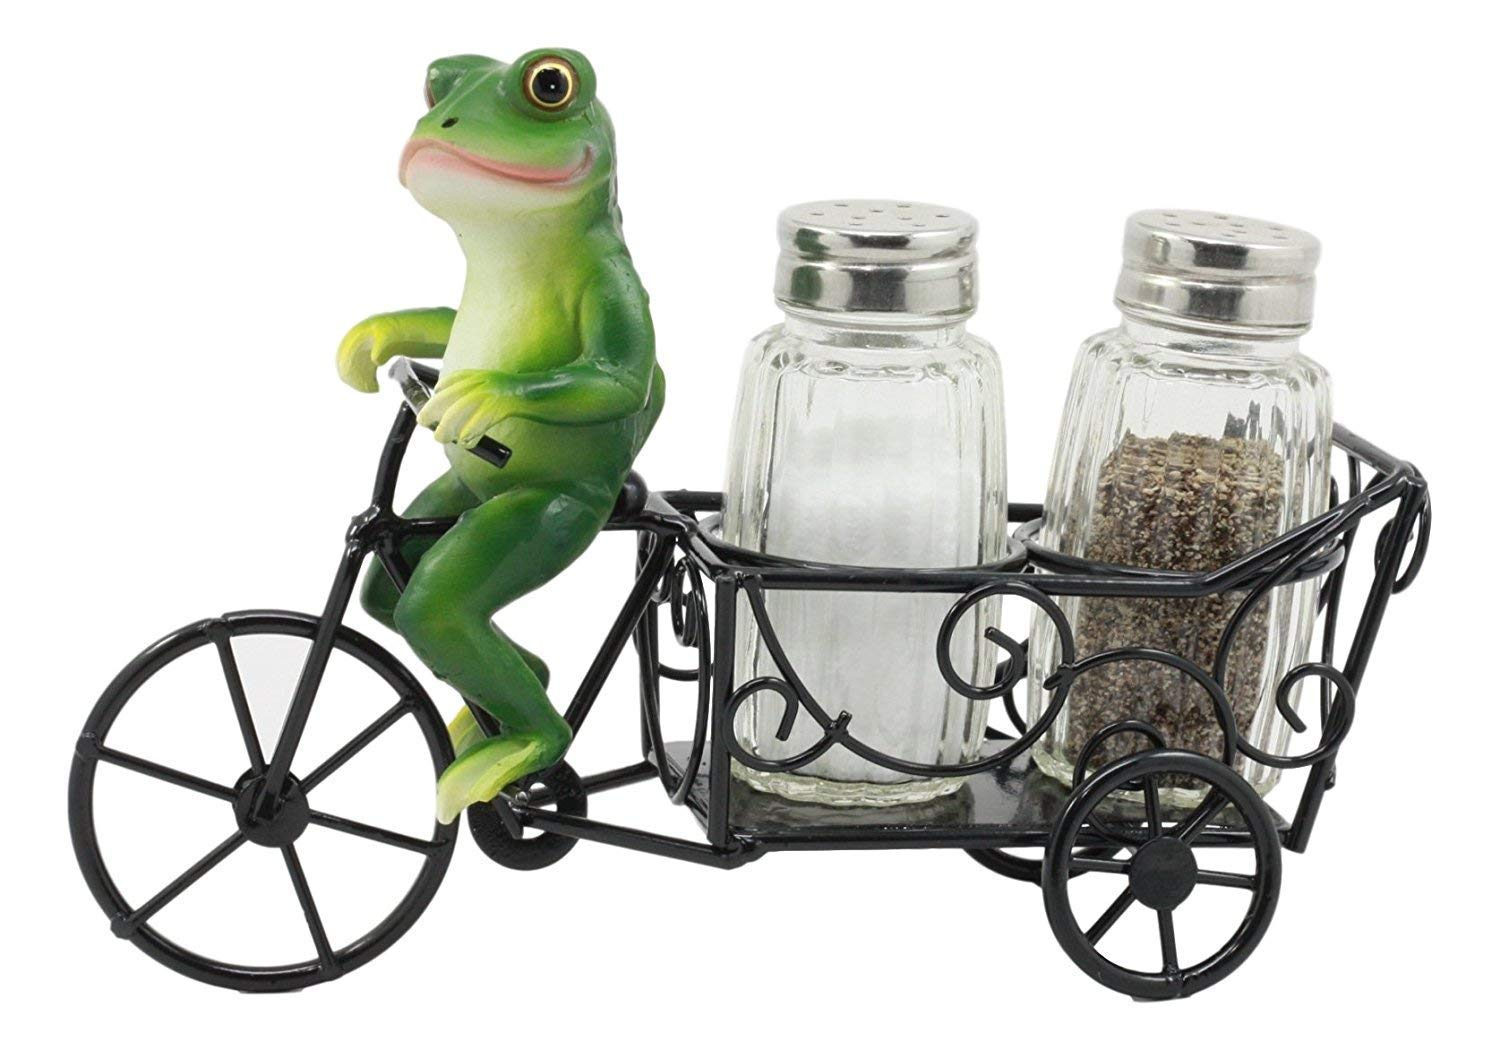 """Ebros """"Croak"""" Spice Village Town Delivery Green Toad Frog Riding Bicycle Cart Salt And Pepper Shakers Holder Figurine 7.5""""Long Whimsical Animal Kitchen Decor"""